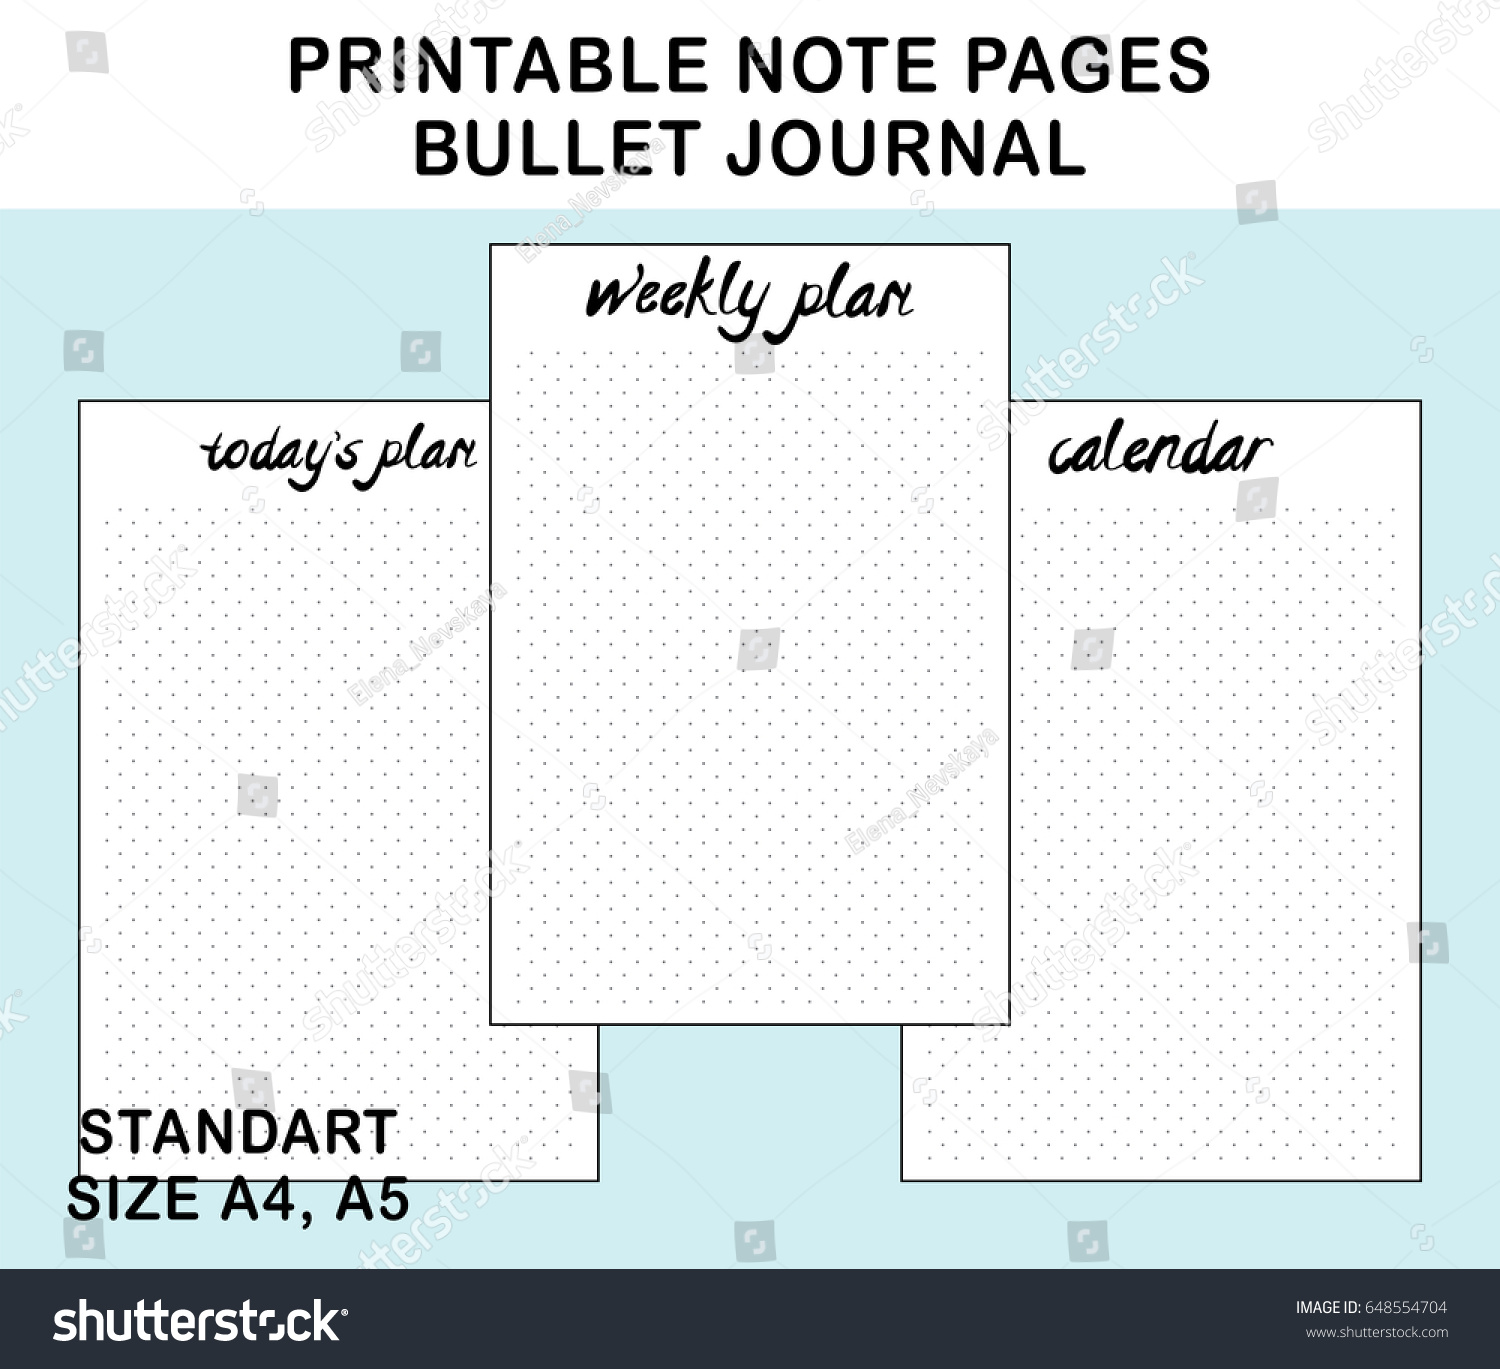 photo relating to Printable Note Pages known as Webpages Bullet Sizing